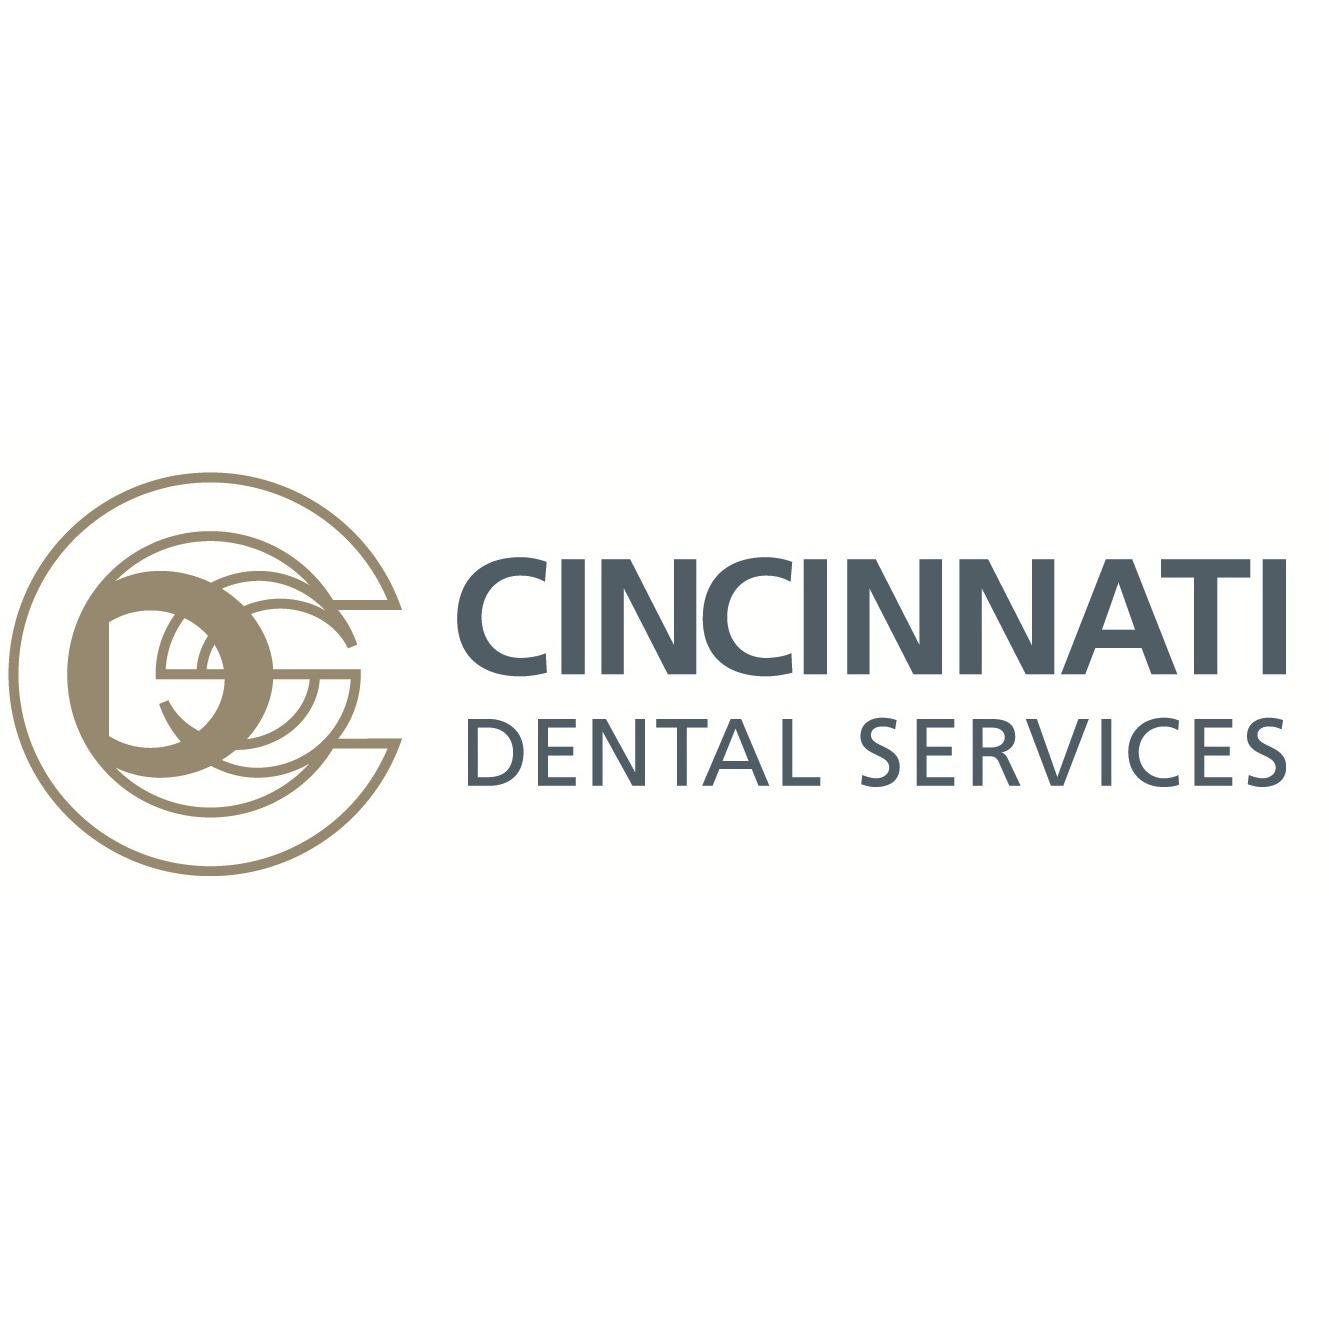 Richard D. Kruer, DDS - Cincinnati Dental Services